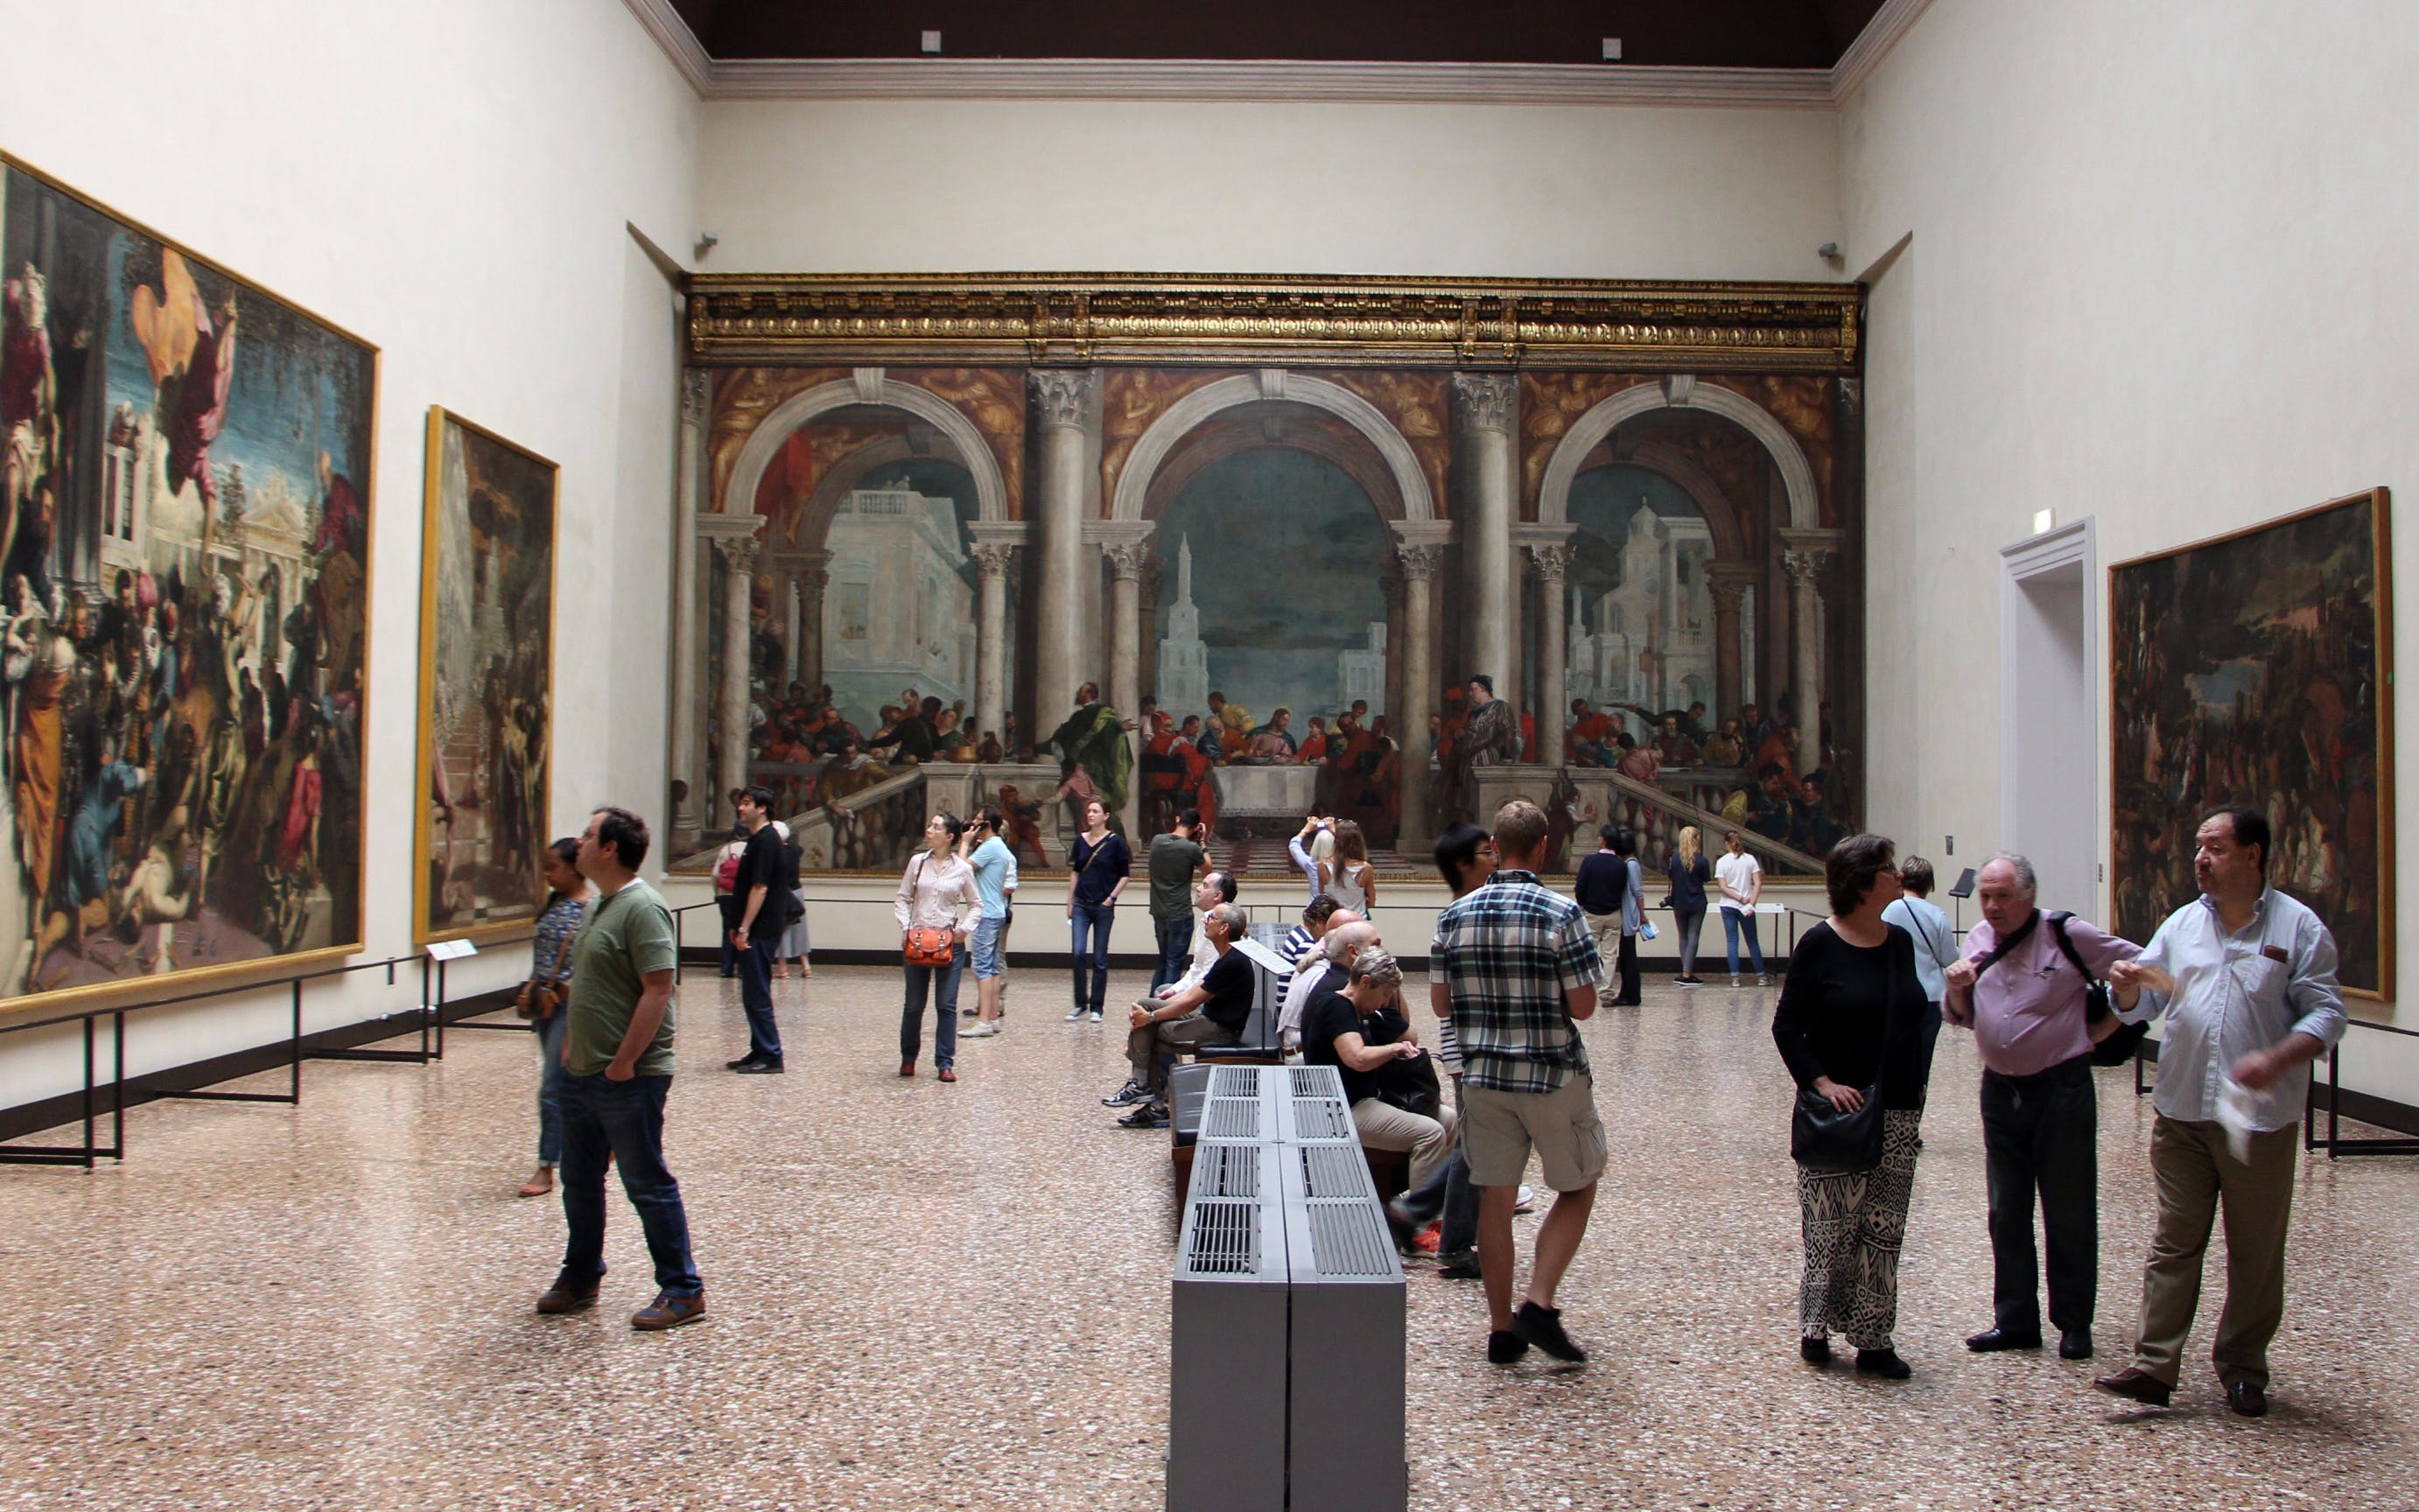 accademia gallery guided tour with skip the line tickets -2